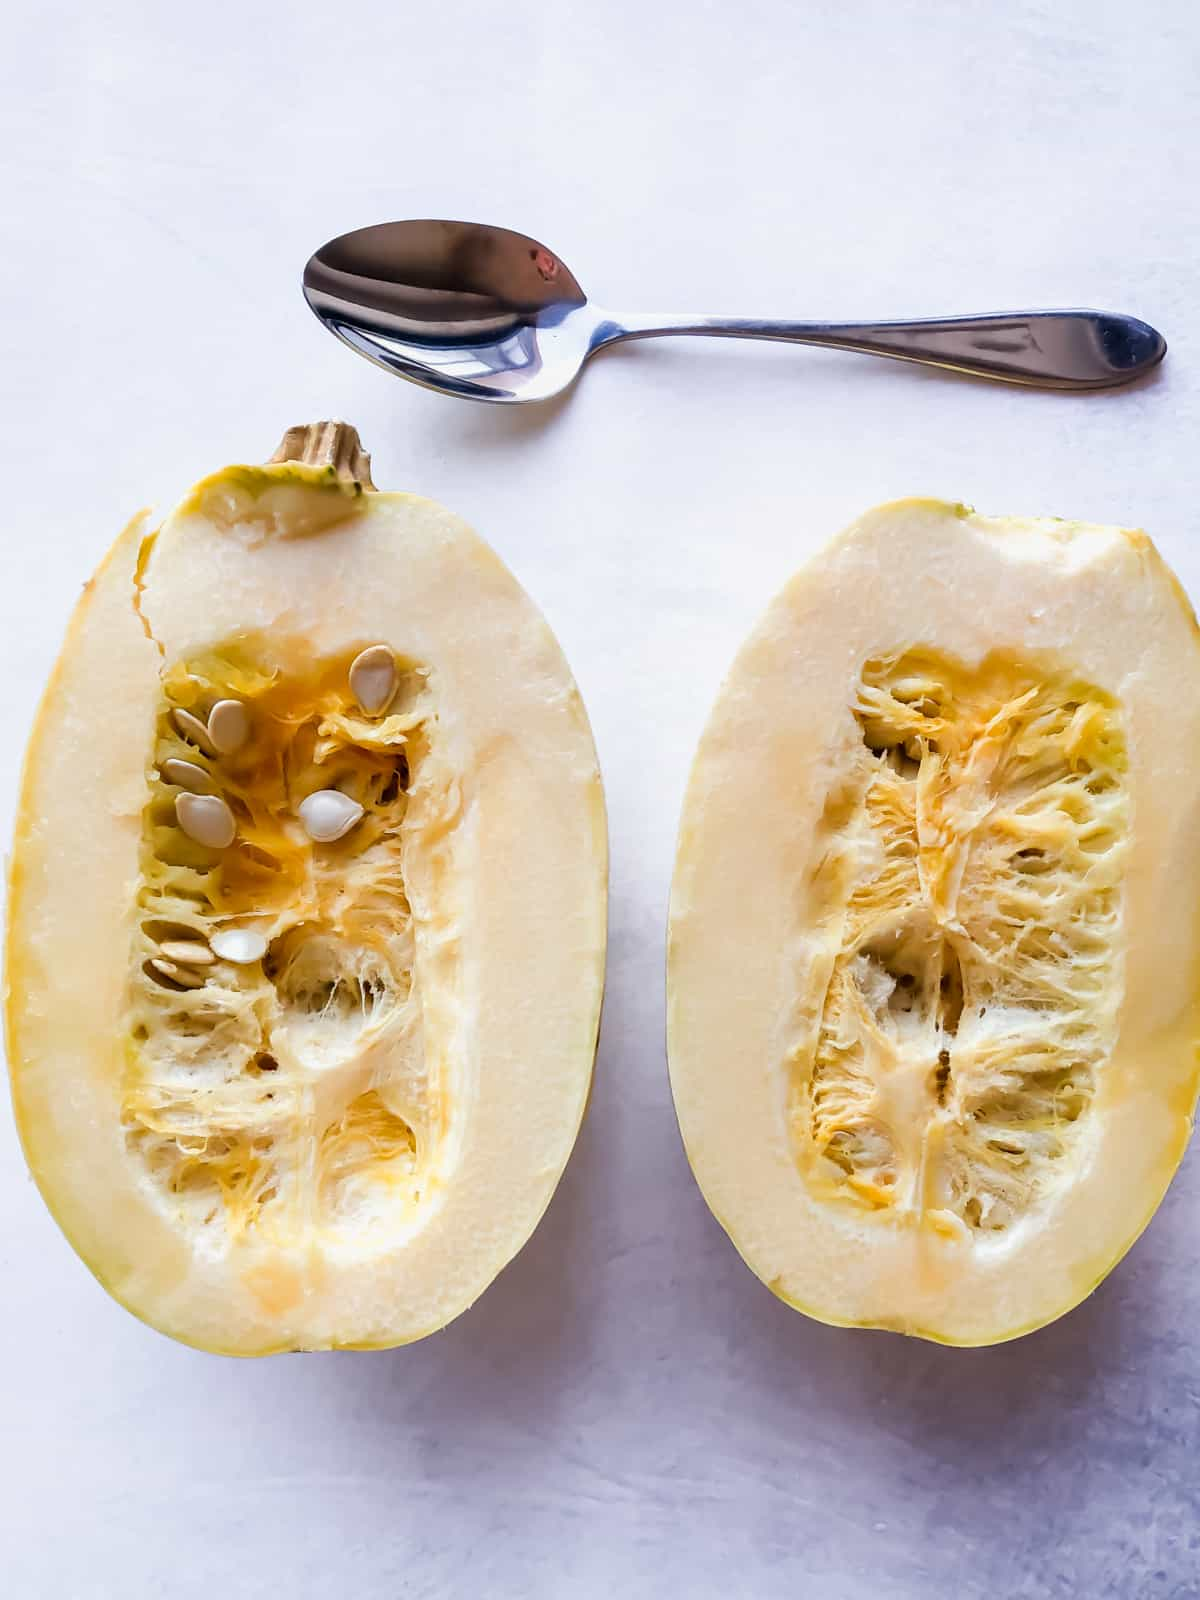 spaghetti squash halves with a spoon on a grey surface